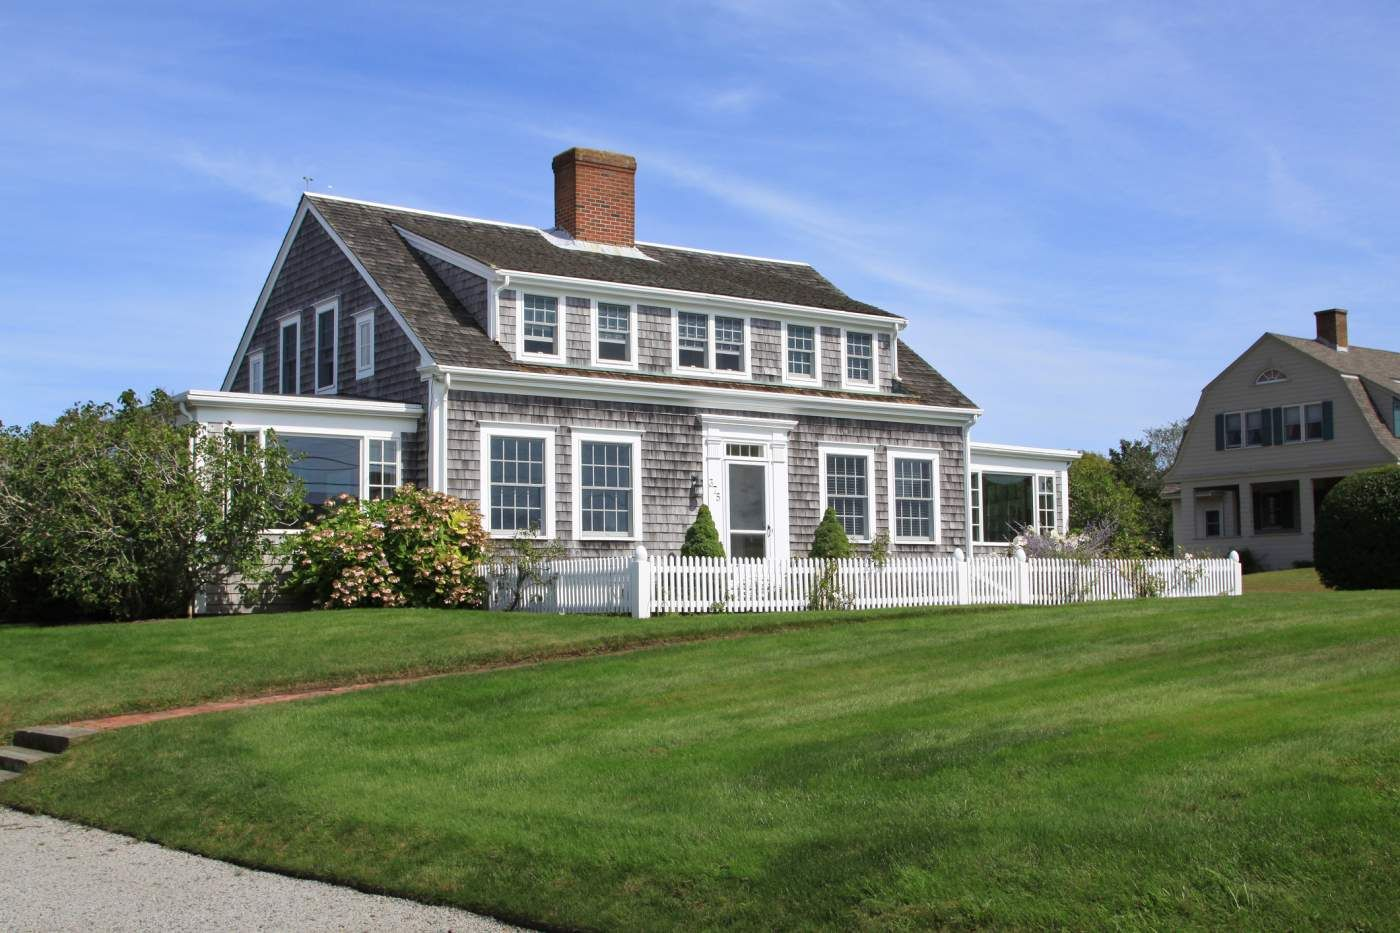 Cape Cod Houses Architectural Basics Cape Cod House Exterior Nantucket Style Homes Cape Cod Style House